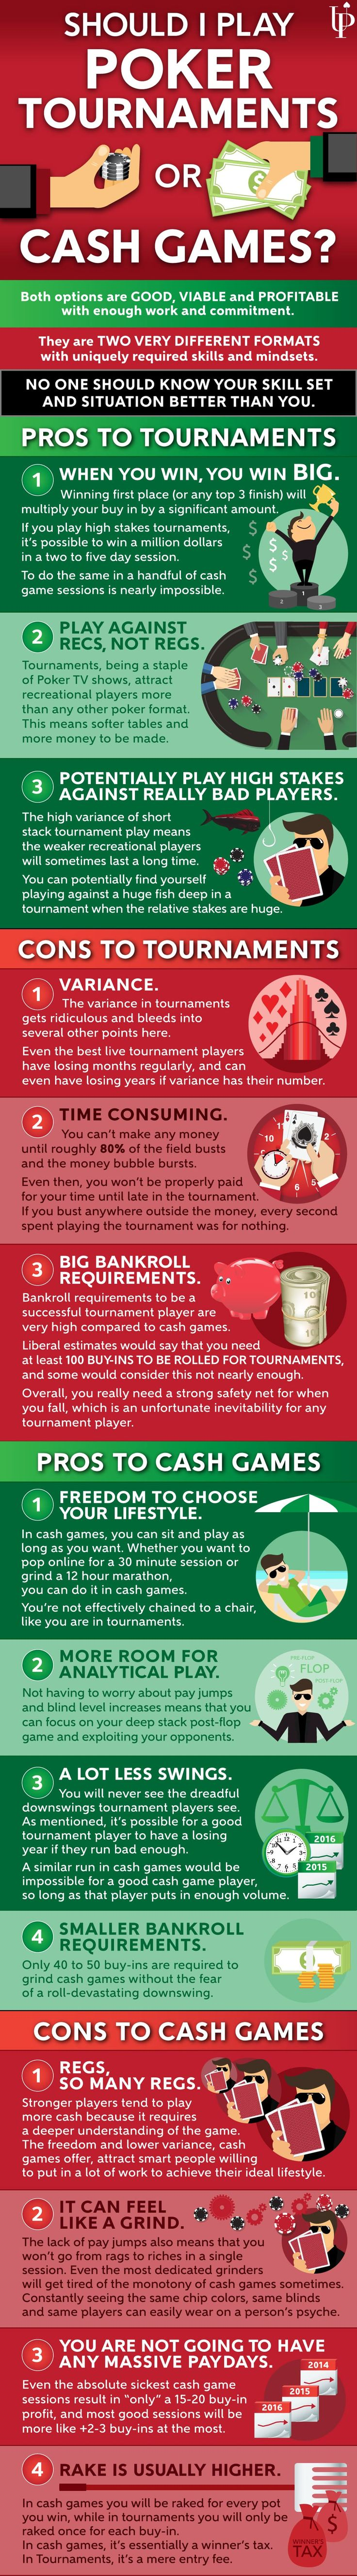 cash games or tournaments vs poker infographic